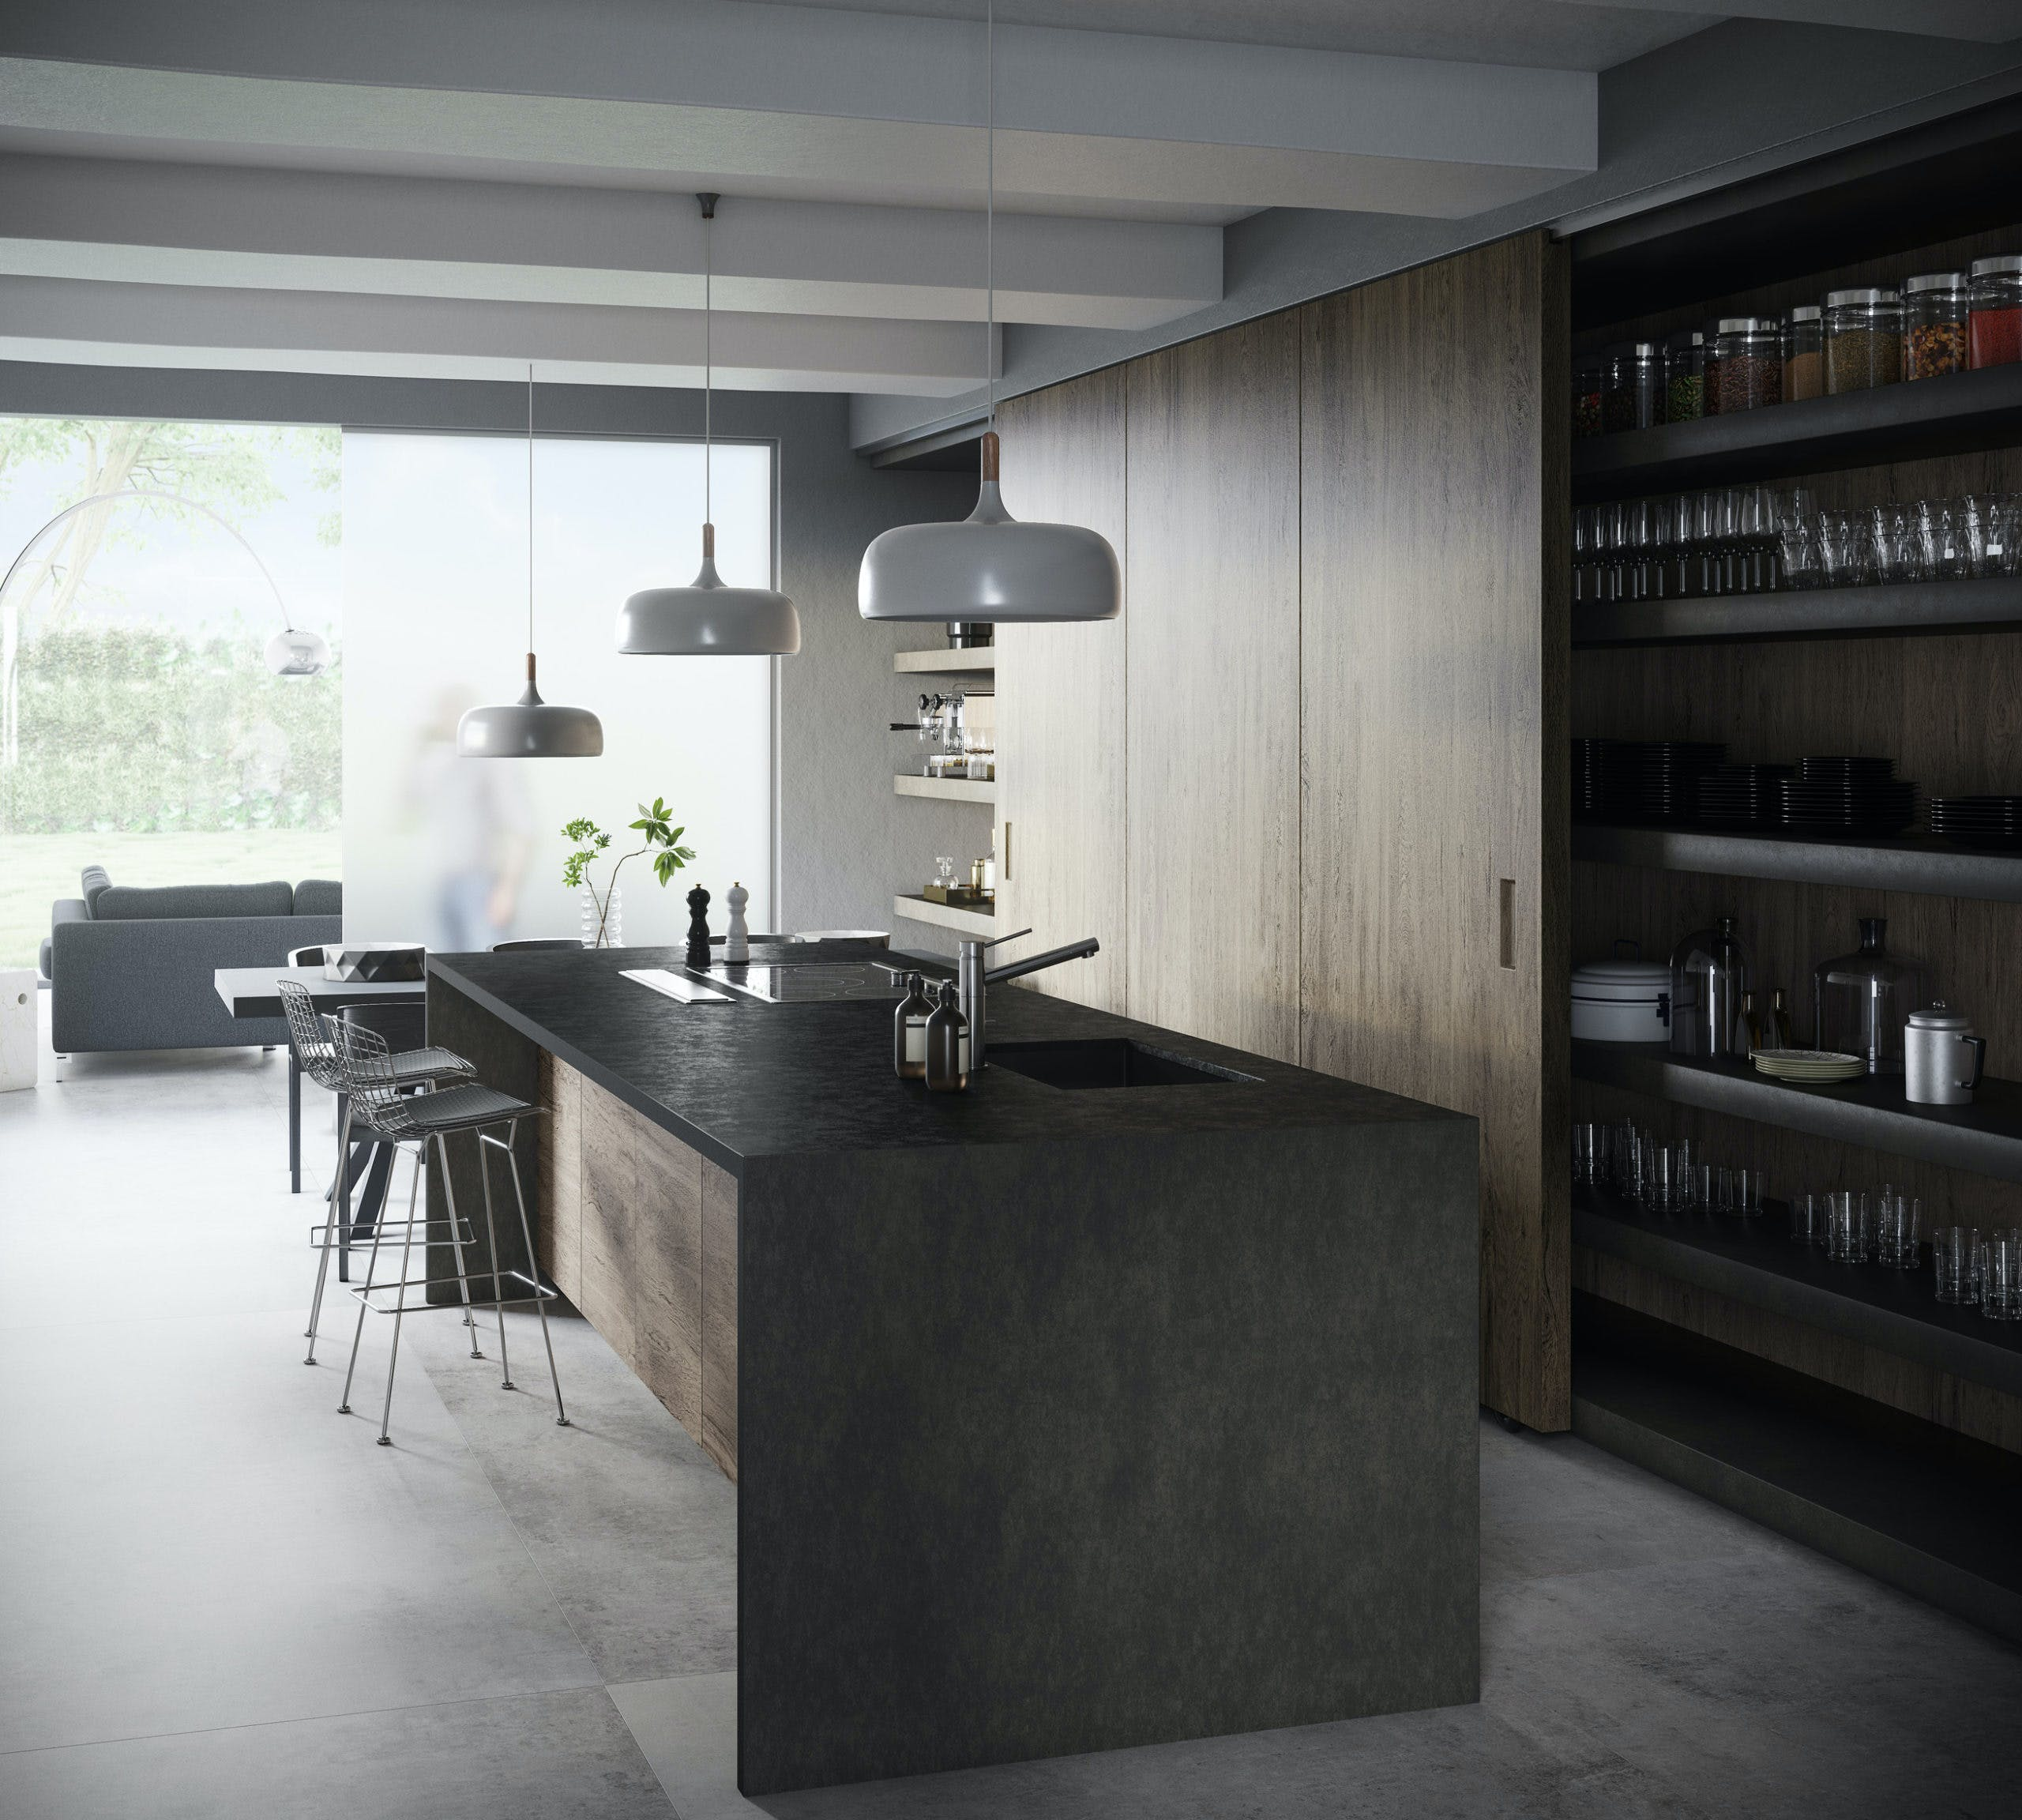 Image of Dekton Kitchen Milar Resized 1 scaled 1 in How to organise your kitchen and keep it that way - Cosentino